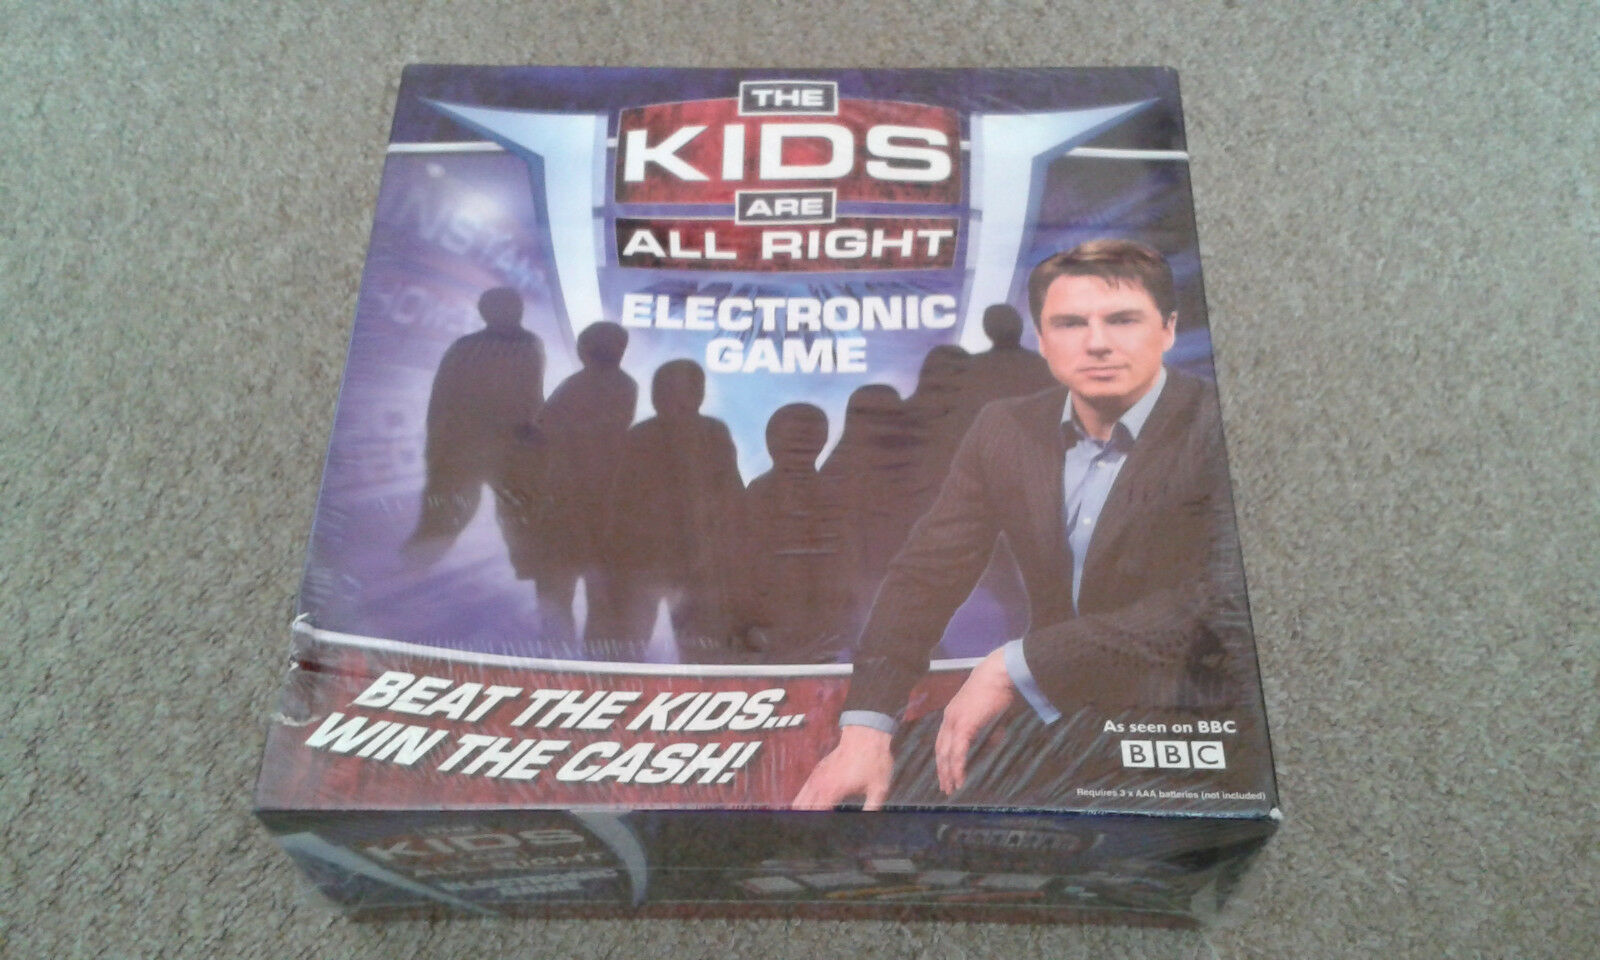 The Kids Are All Right Electronic Game - As Seen On BBC - Brand New & Sealed